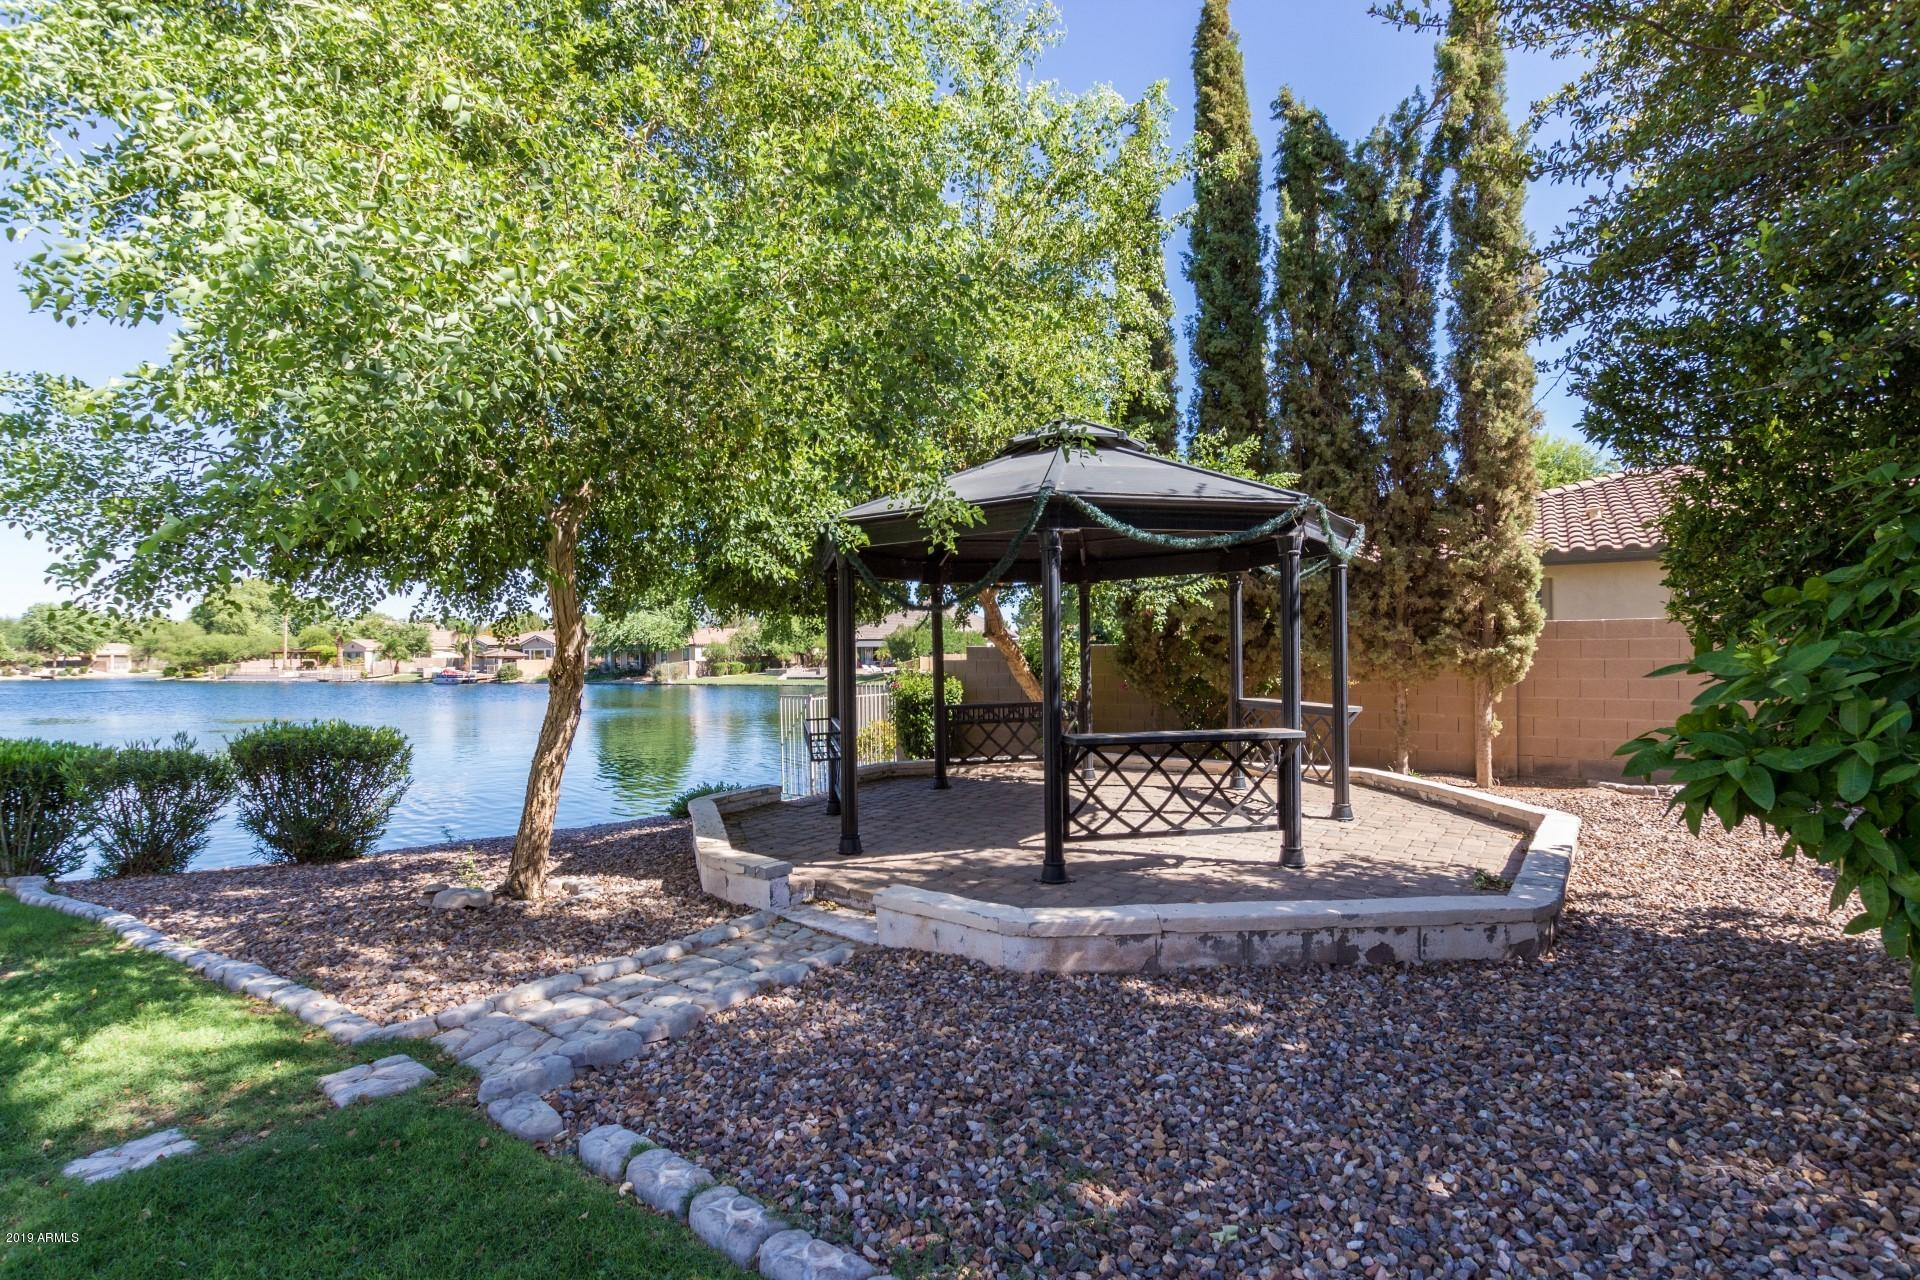 MLS 5967123 415 E LYNX Way, Chandler, AZ 85249 Chandler AZ Waterfront